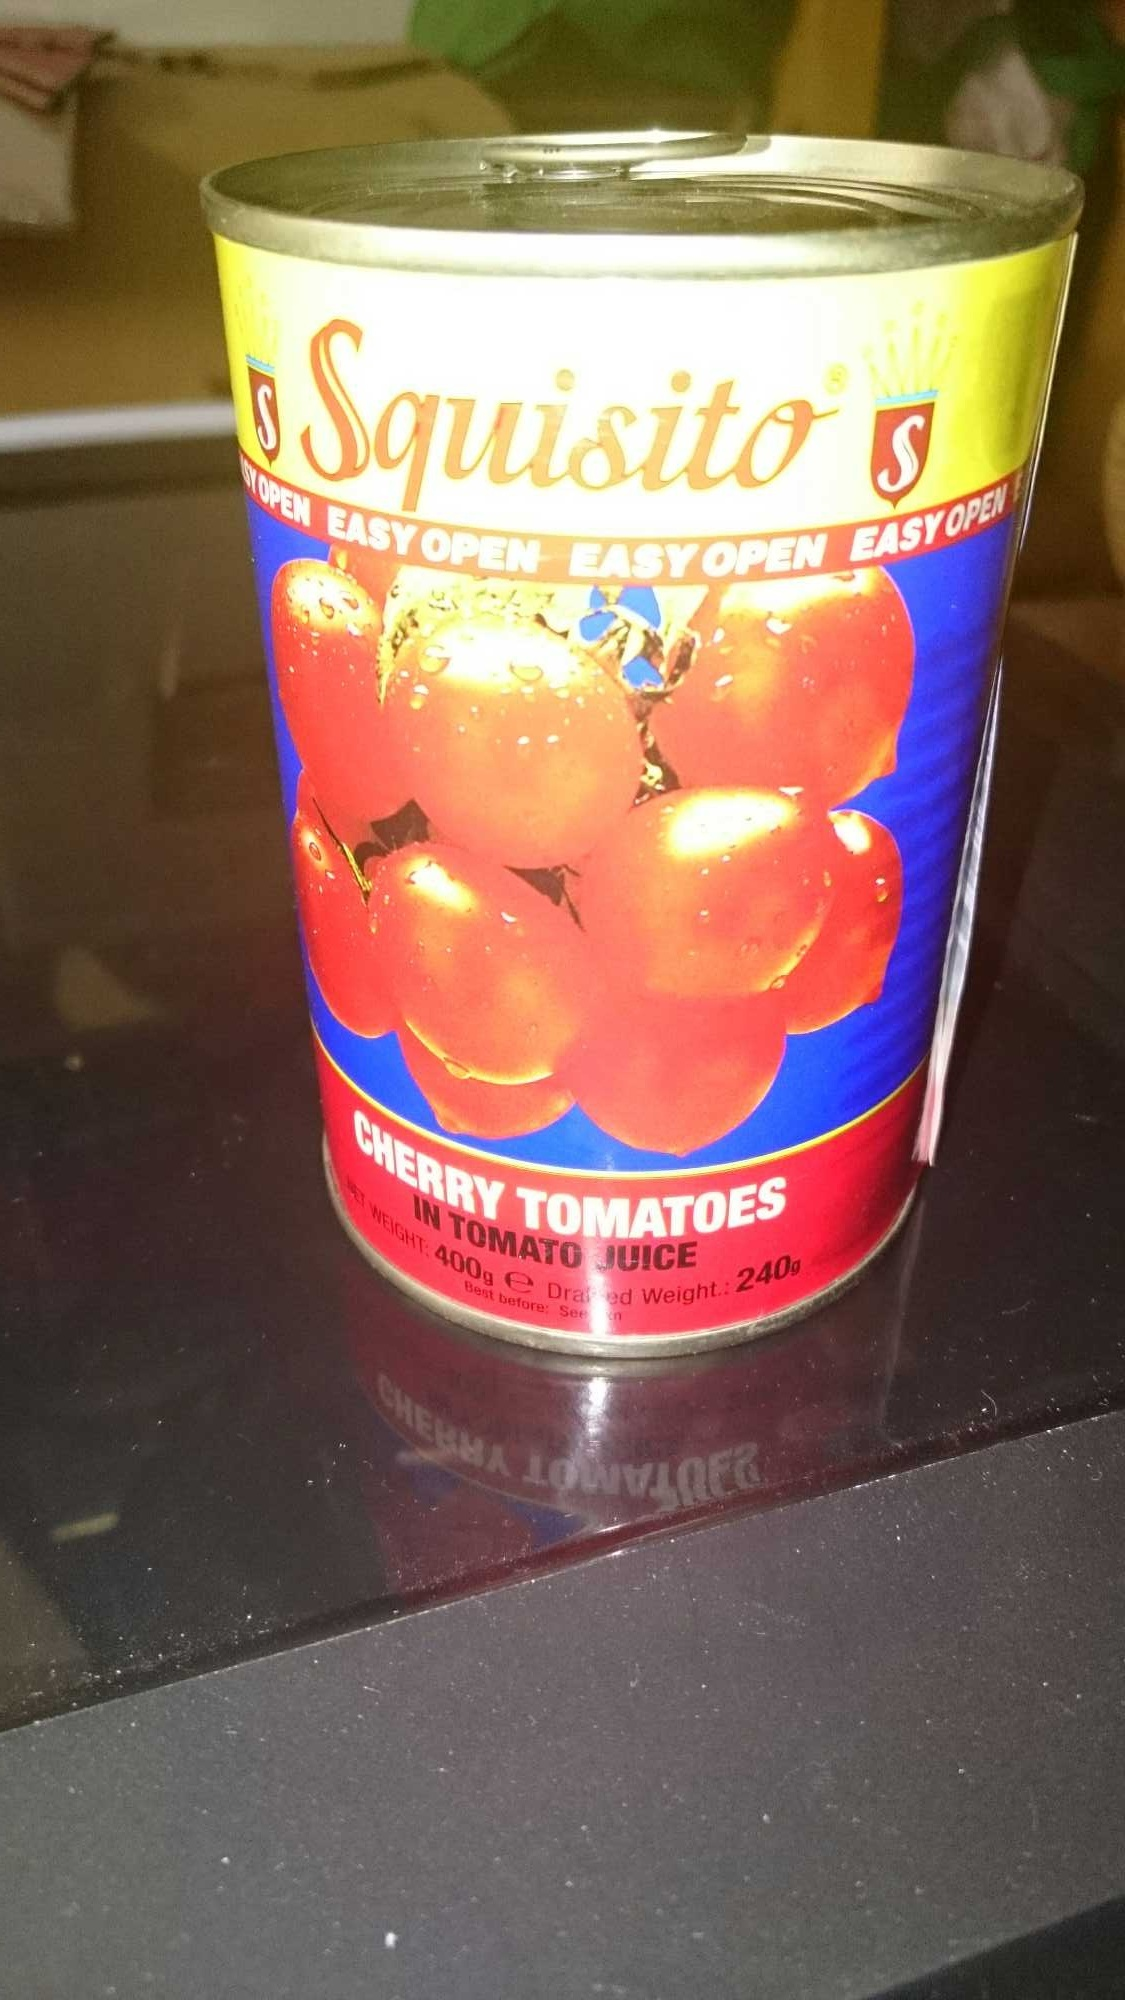 cherry tomatoes in tomato juice - Product - en